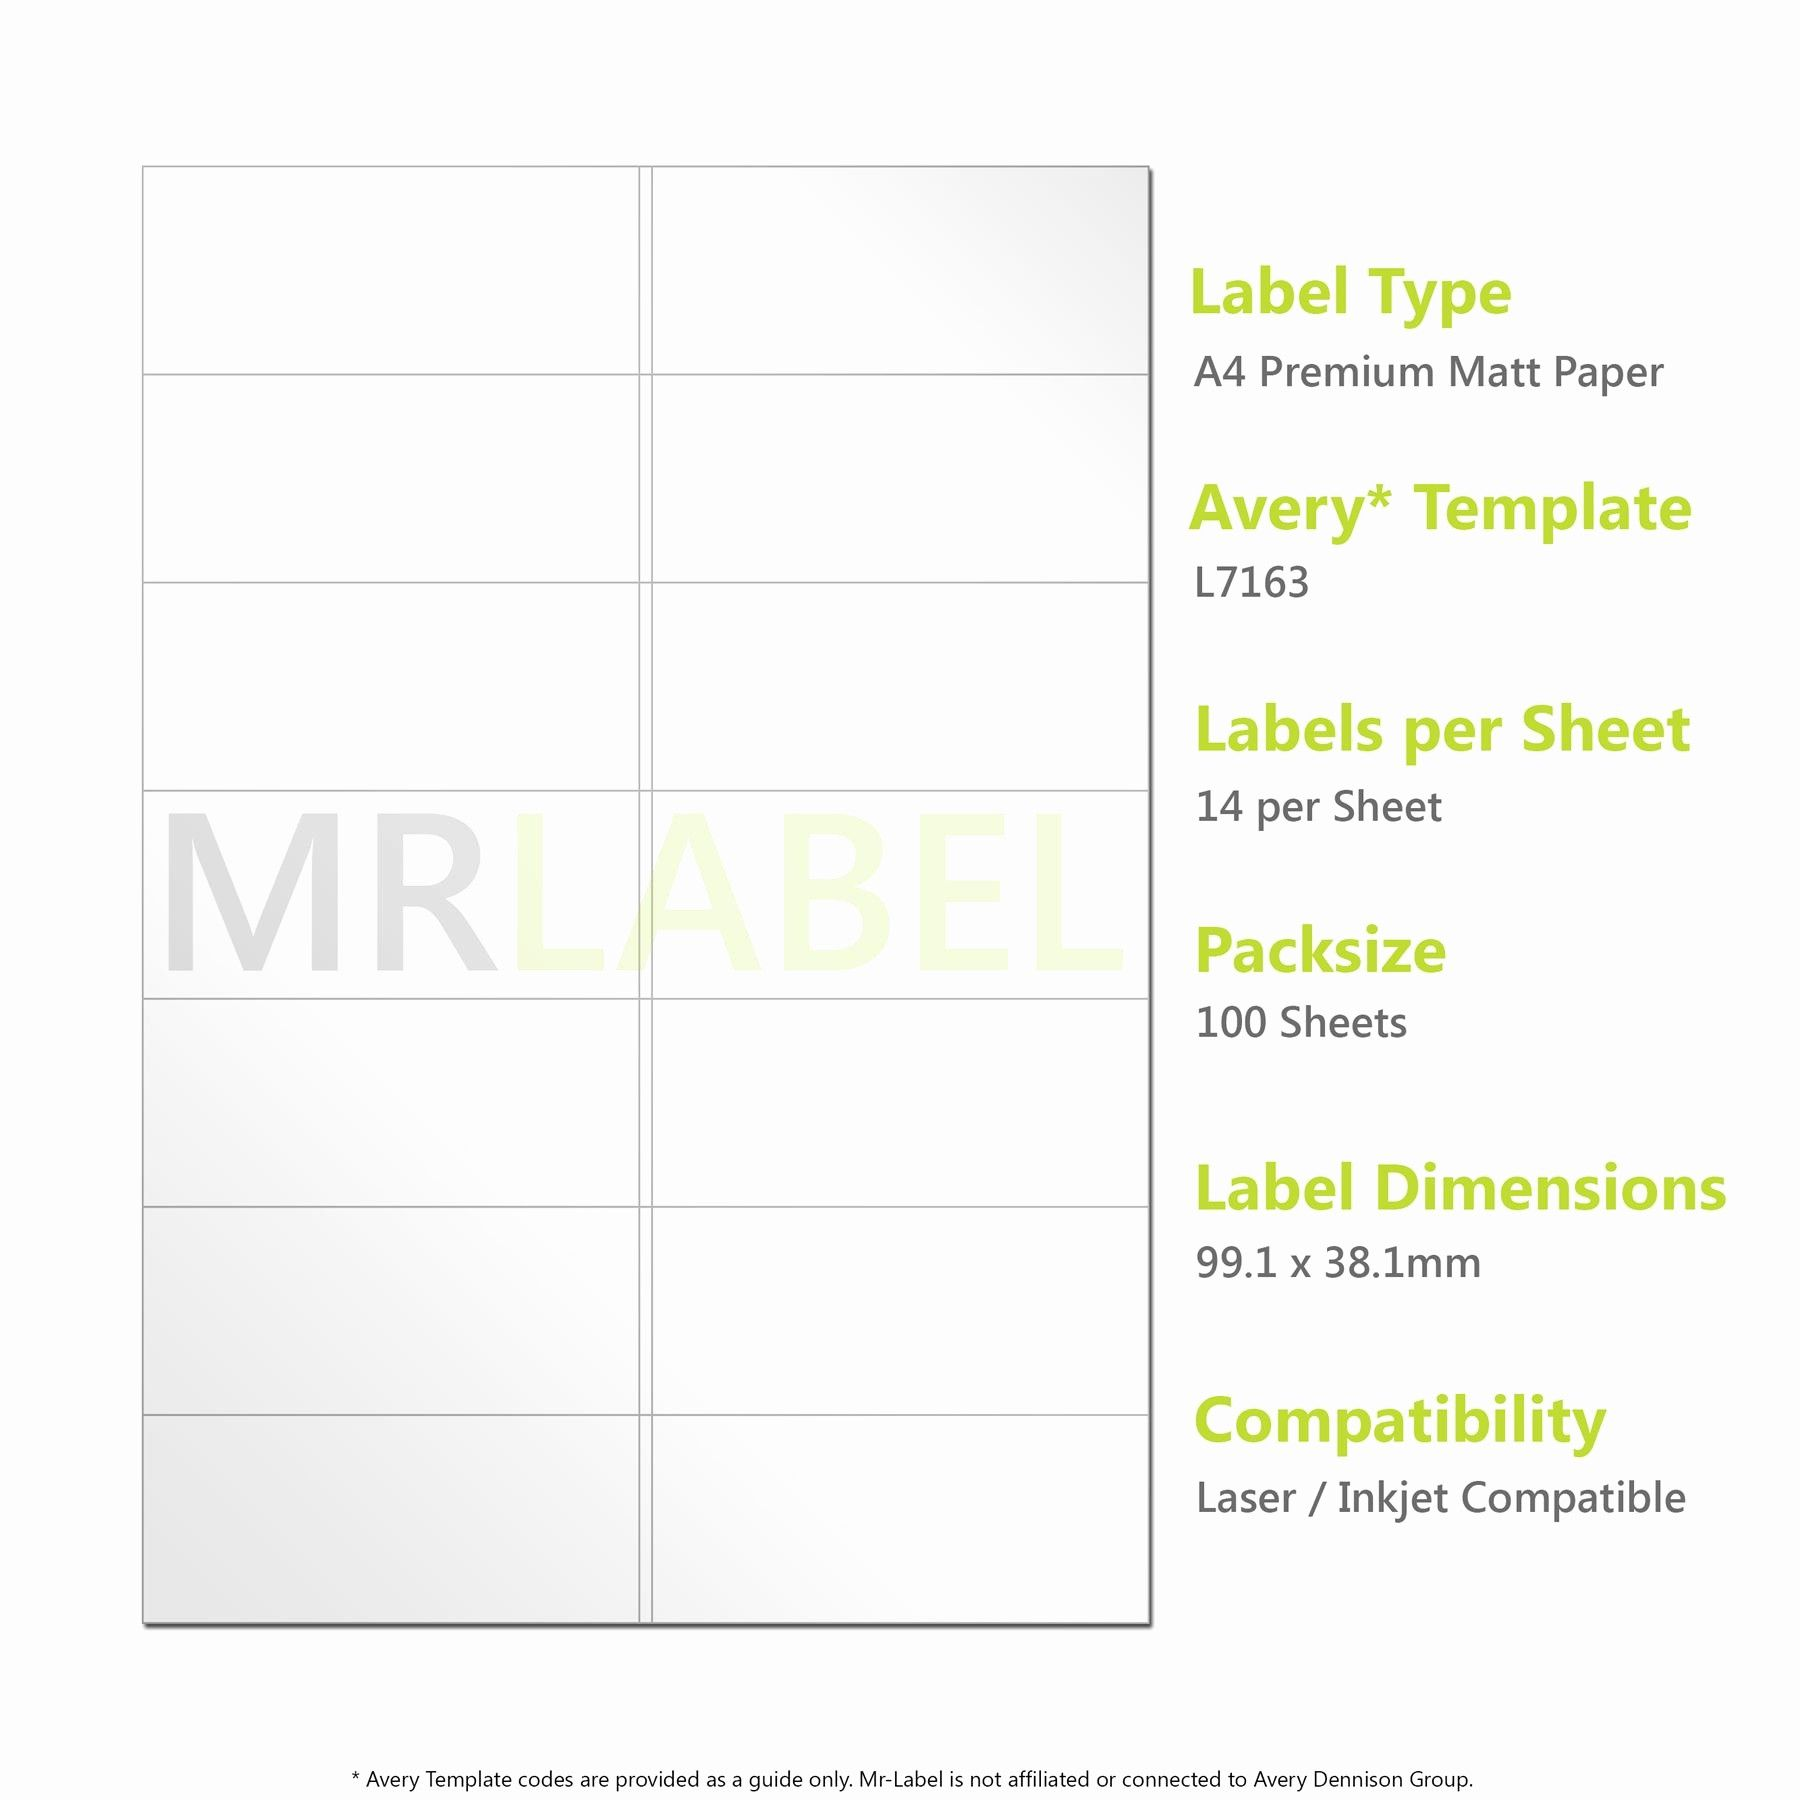 Avery Label 6 Per Page Elegant Avery Patible A4 Self Adhesive Labels L7163 J8163 14 Label Templates Avery Labels Dvd Label Template Avery label 6 per page